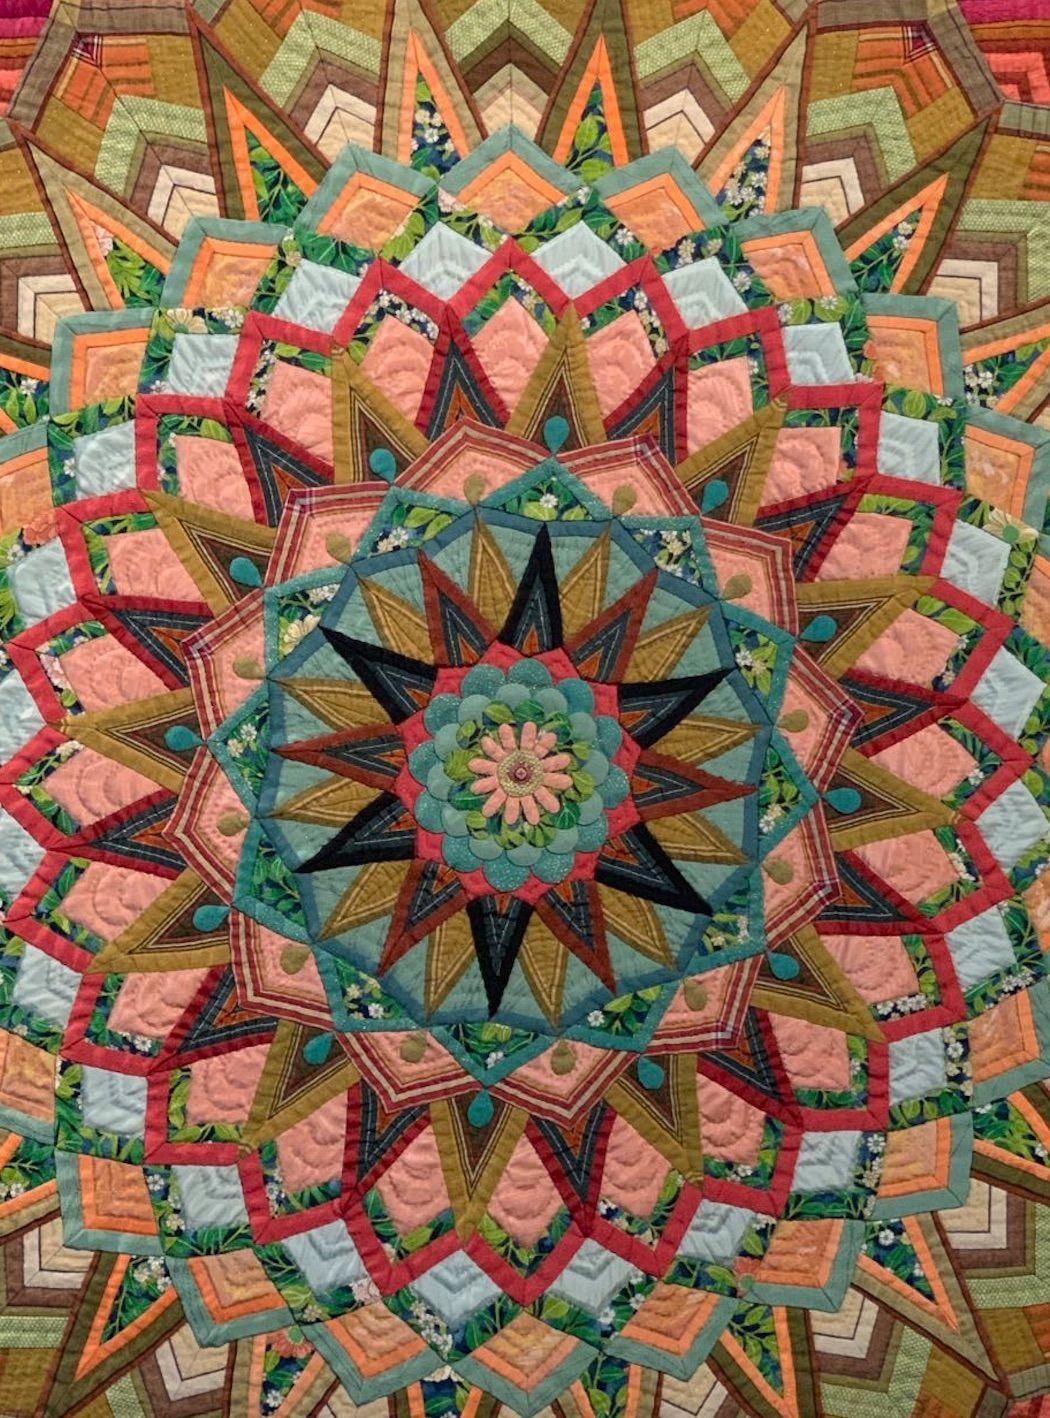 A Masterpiece of Appliqué and Piecing  Masako Sanada's   When Everyone's Heart Blooms  is part of Kaleidoscope quilt, Art quilts, Patchwork quilts, Applique quilts, Beautiful quilts, The quilt show - See Masako Sanada's quilt,  When Everyone's Heart Blooms